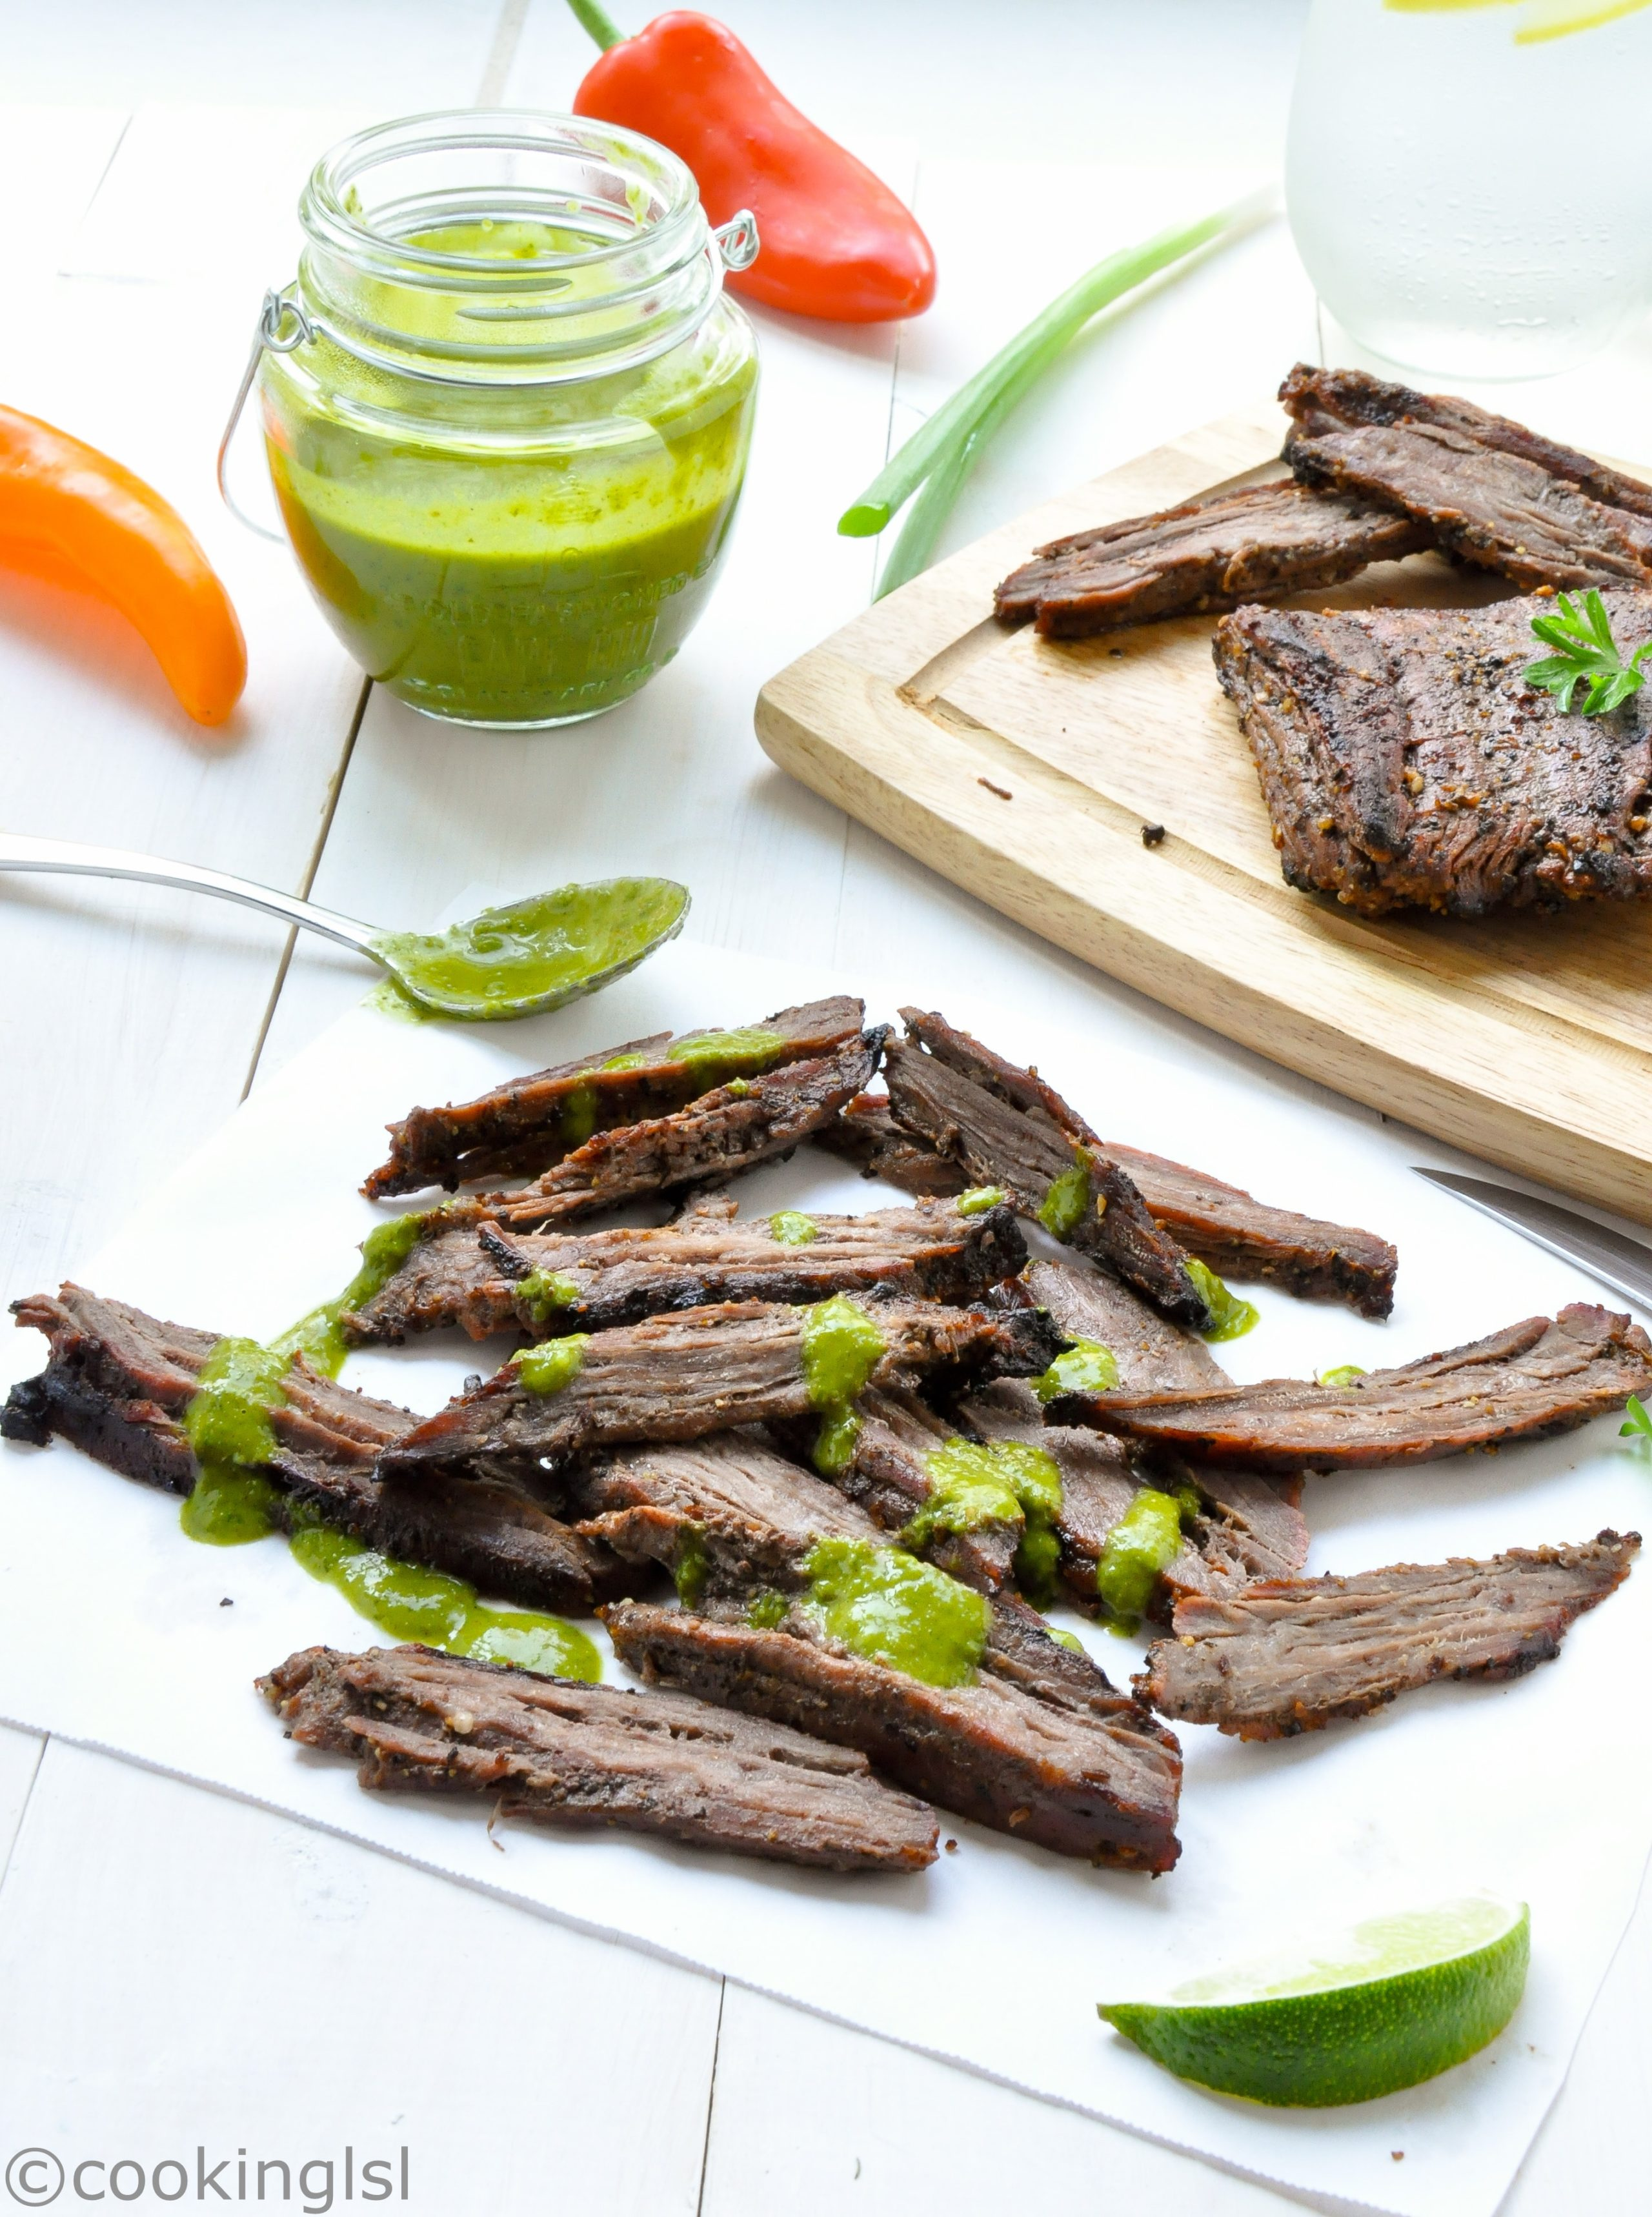 Grilled Skirt Steak With Chimichurri #LaborDay